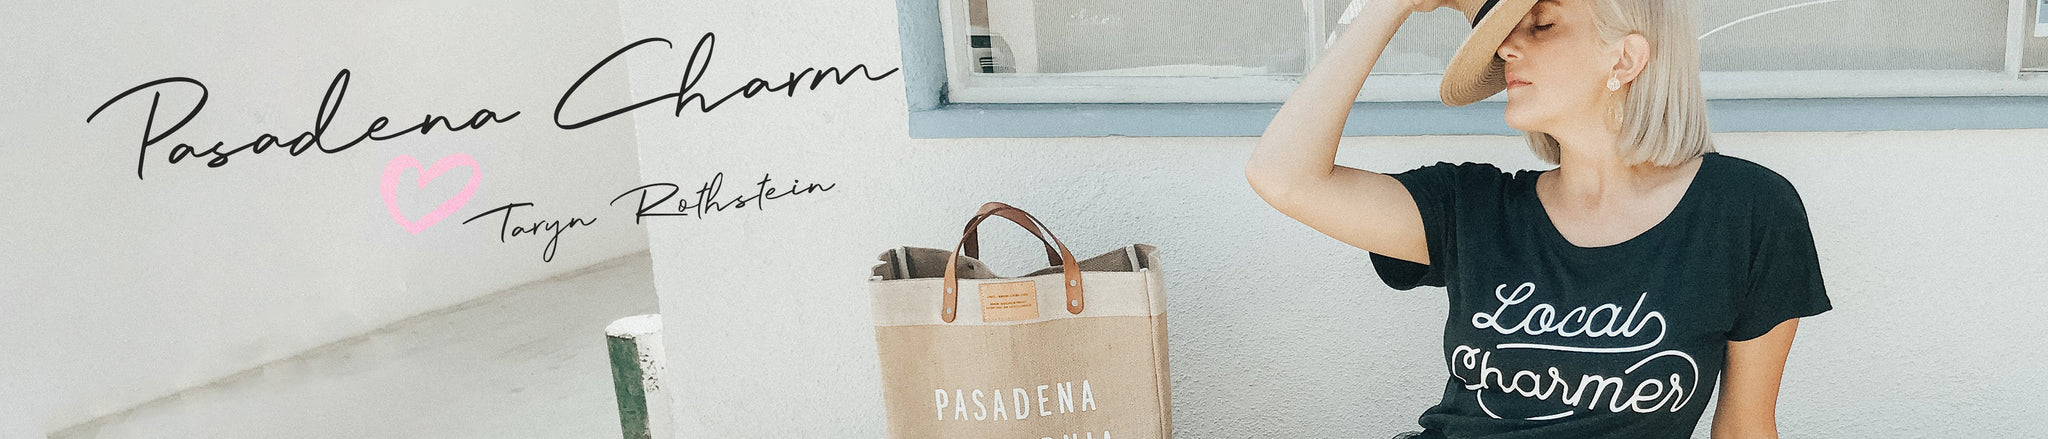 Pasadena Charm Exclusive Release Page Banner